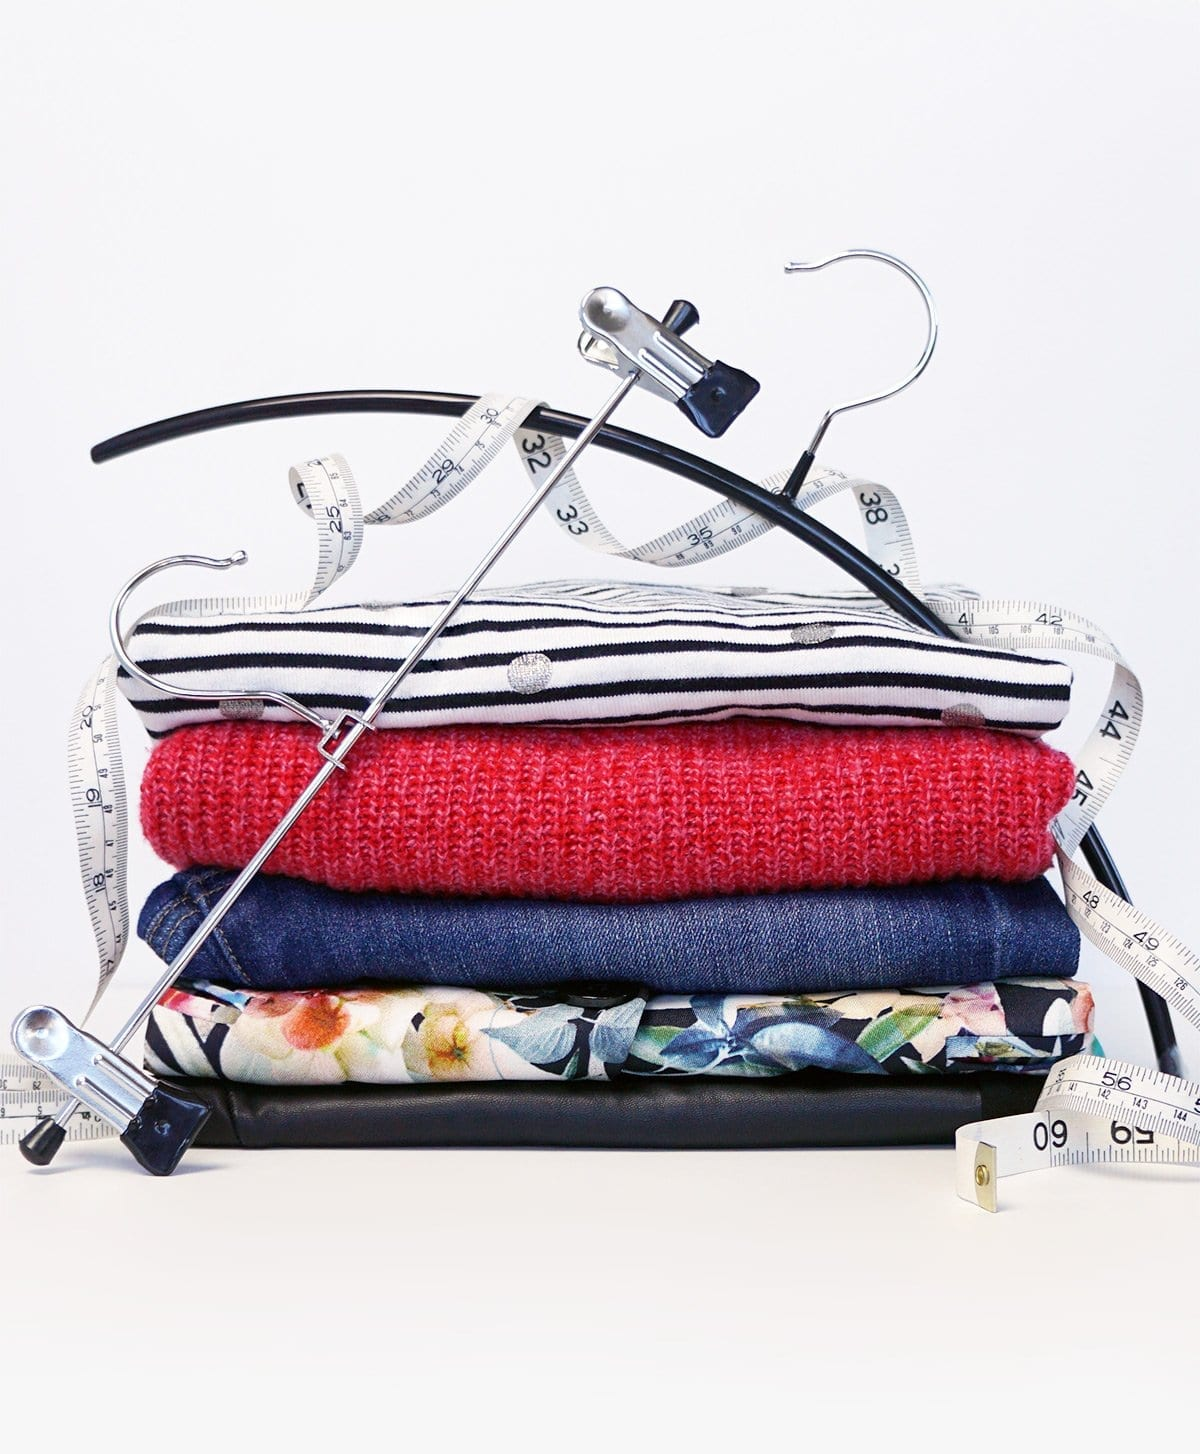 folded clothing with a hanger and tapemeasure